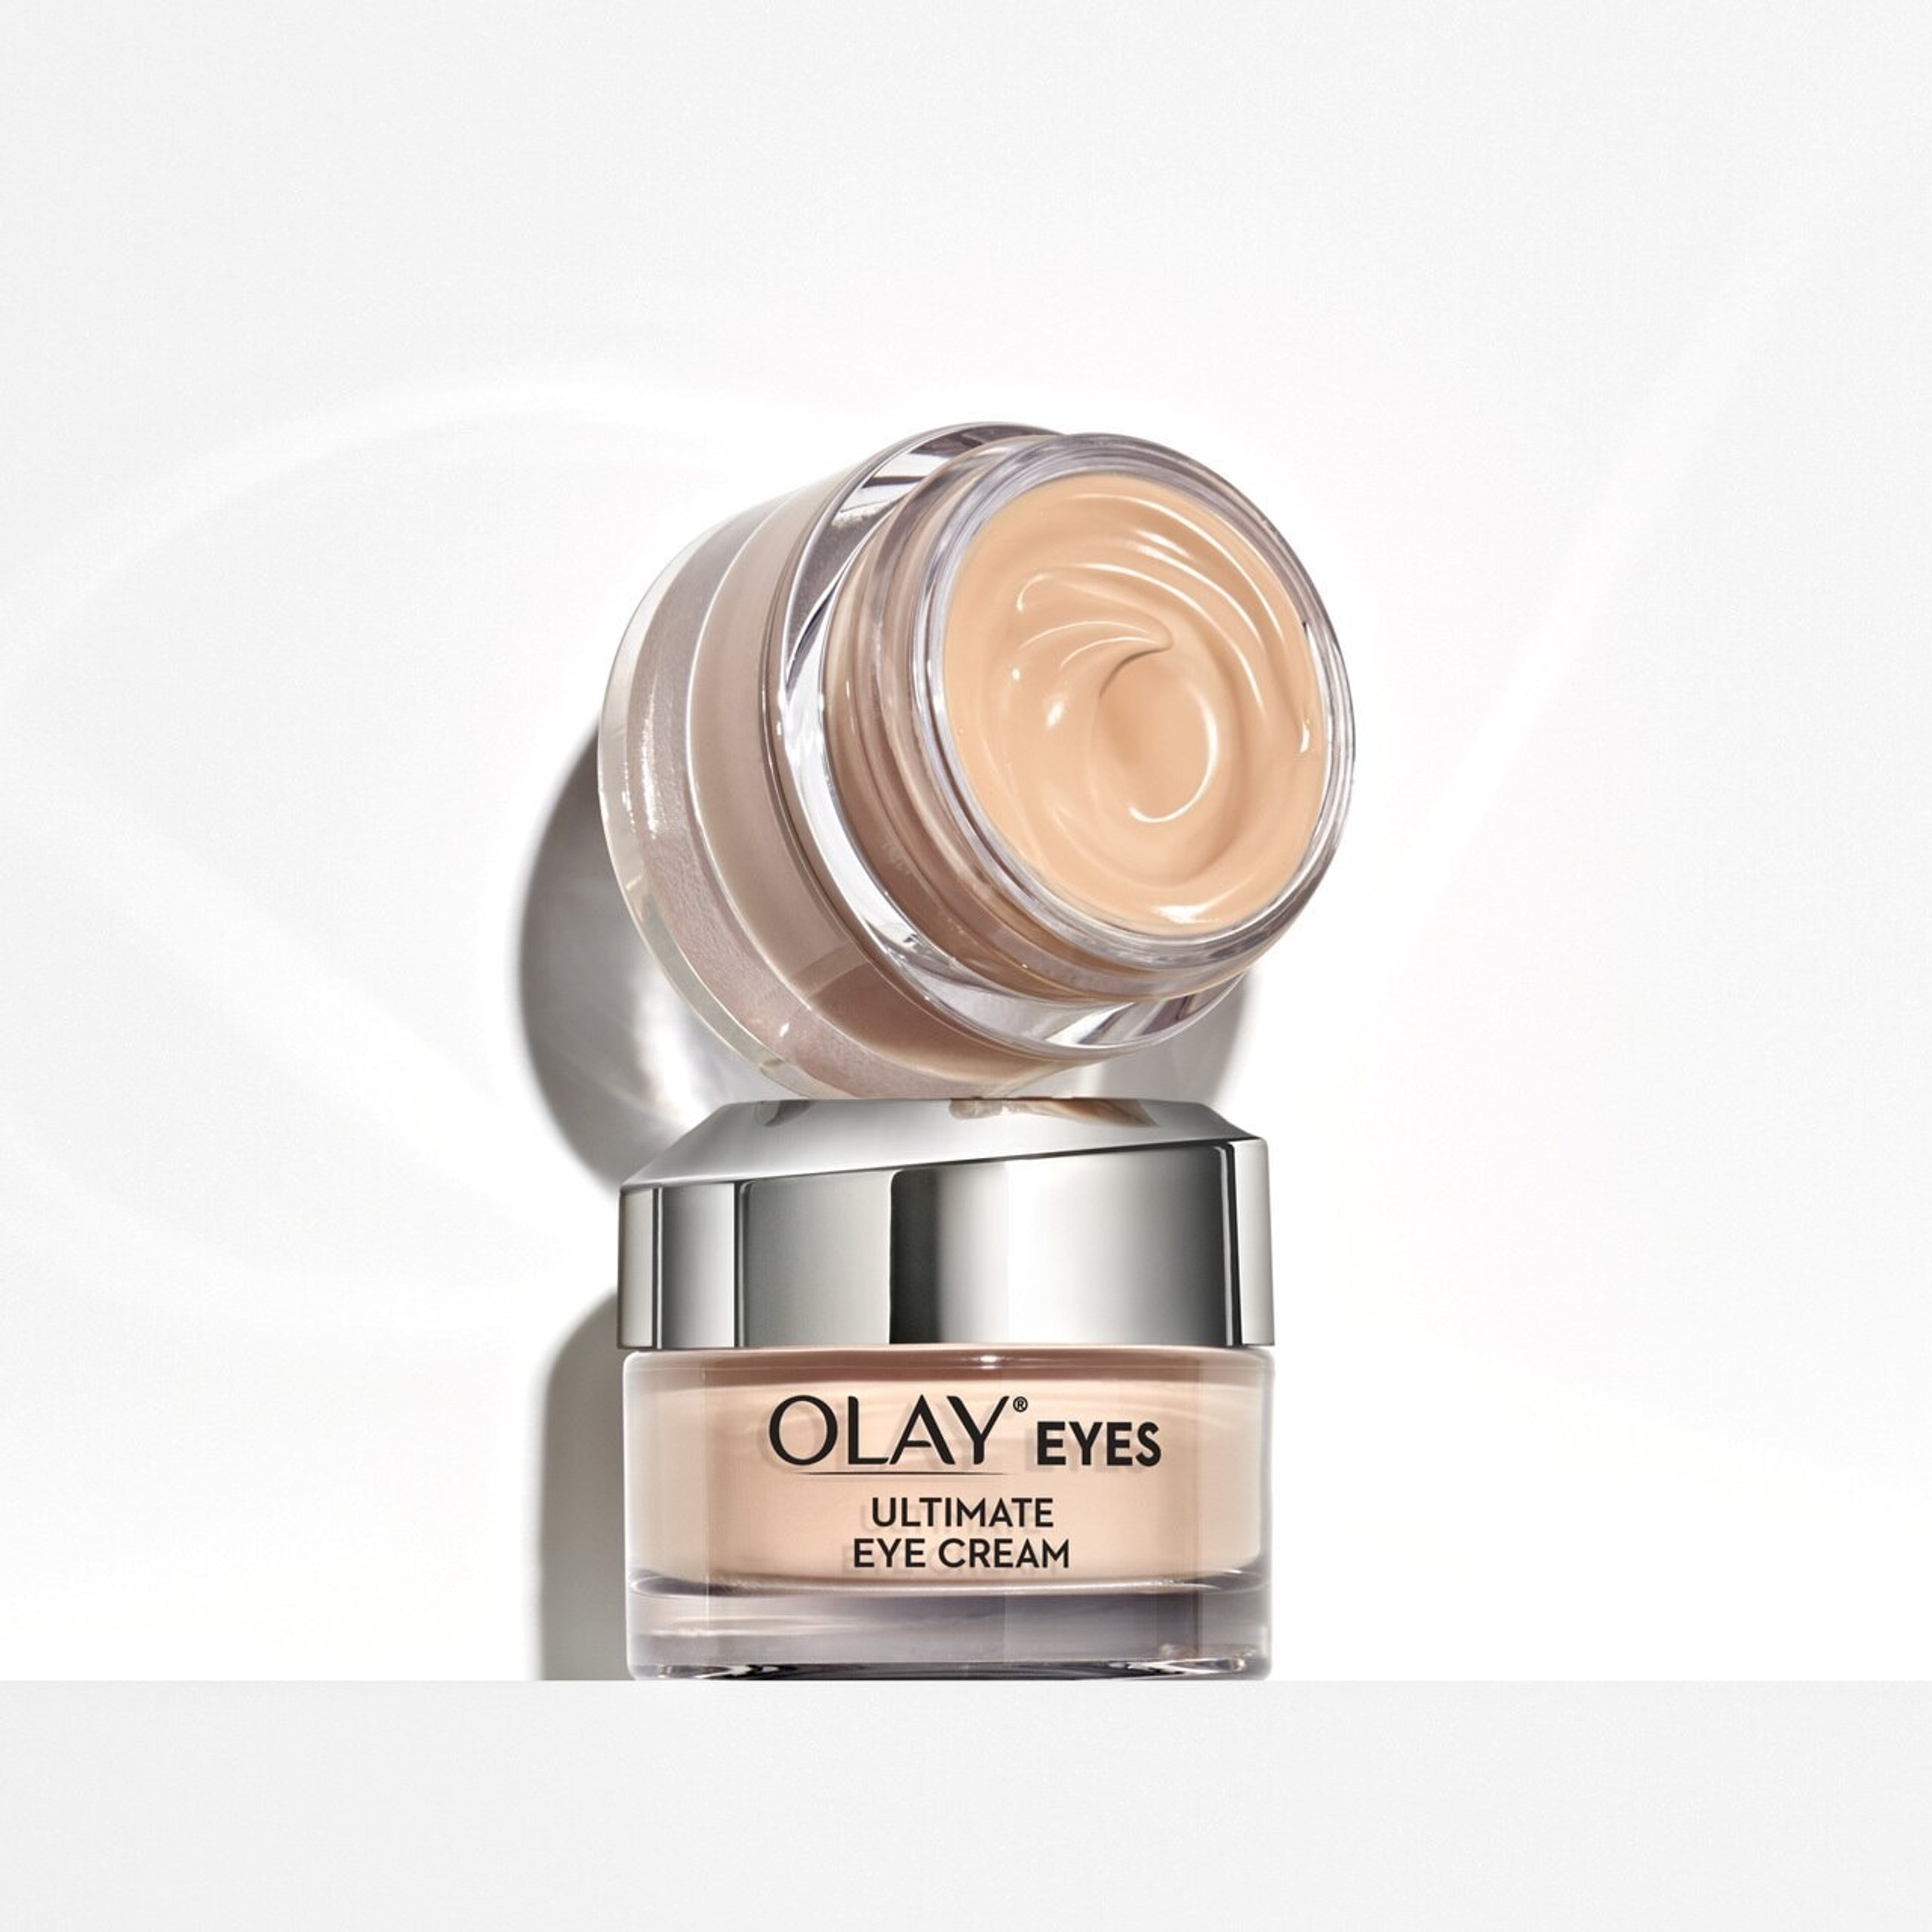 Olay - Ultimate Eye Cream For Wrinkles, Puffy Eyes & Dark Circles